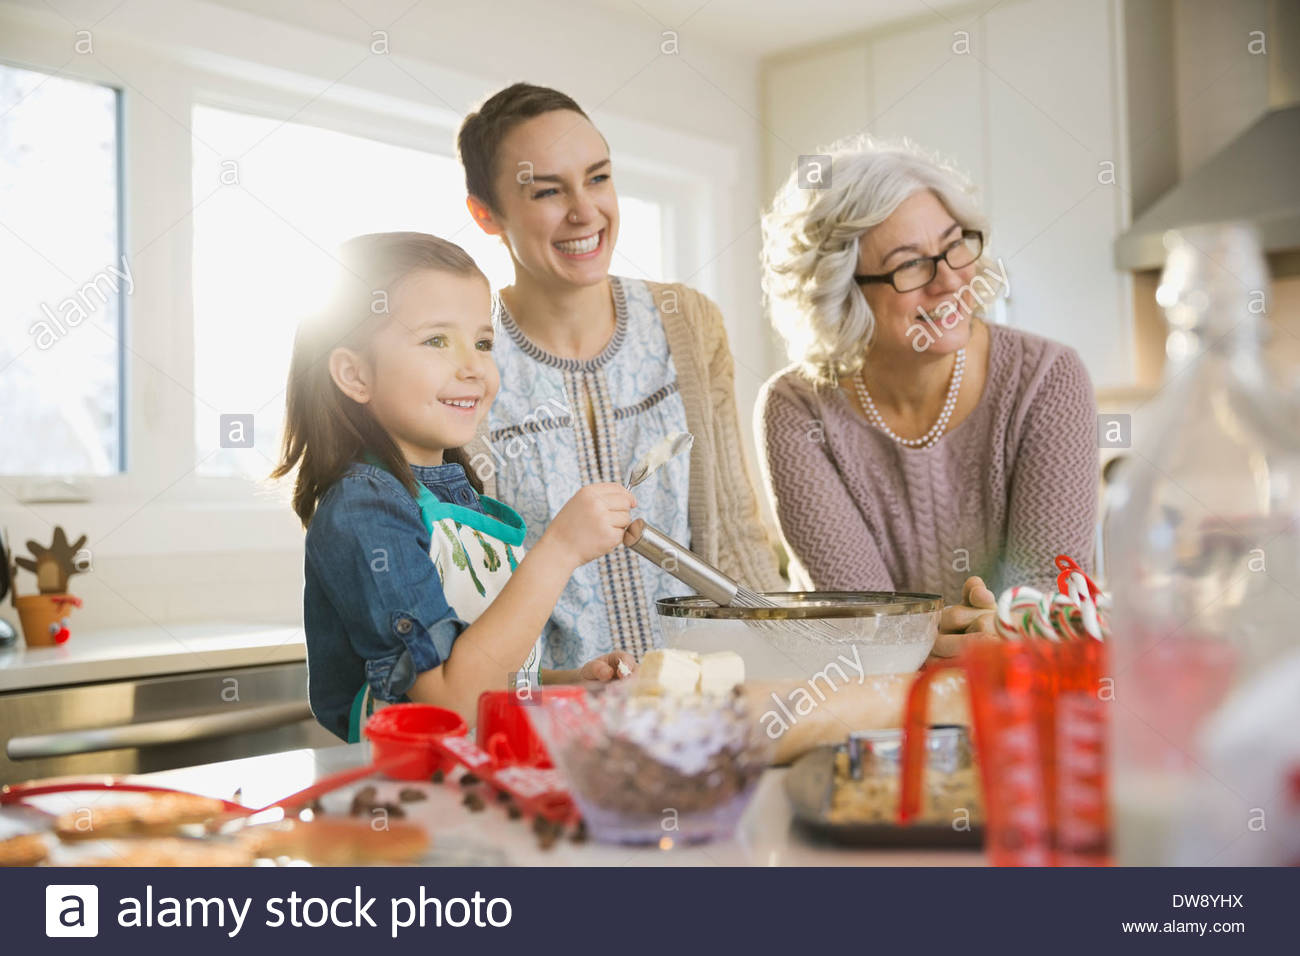 Three generation family baking cookies at Christmas - Stock Image